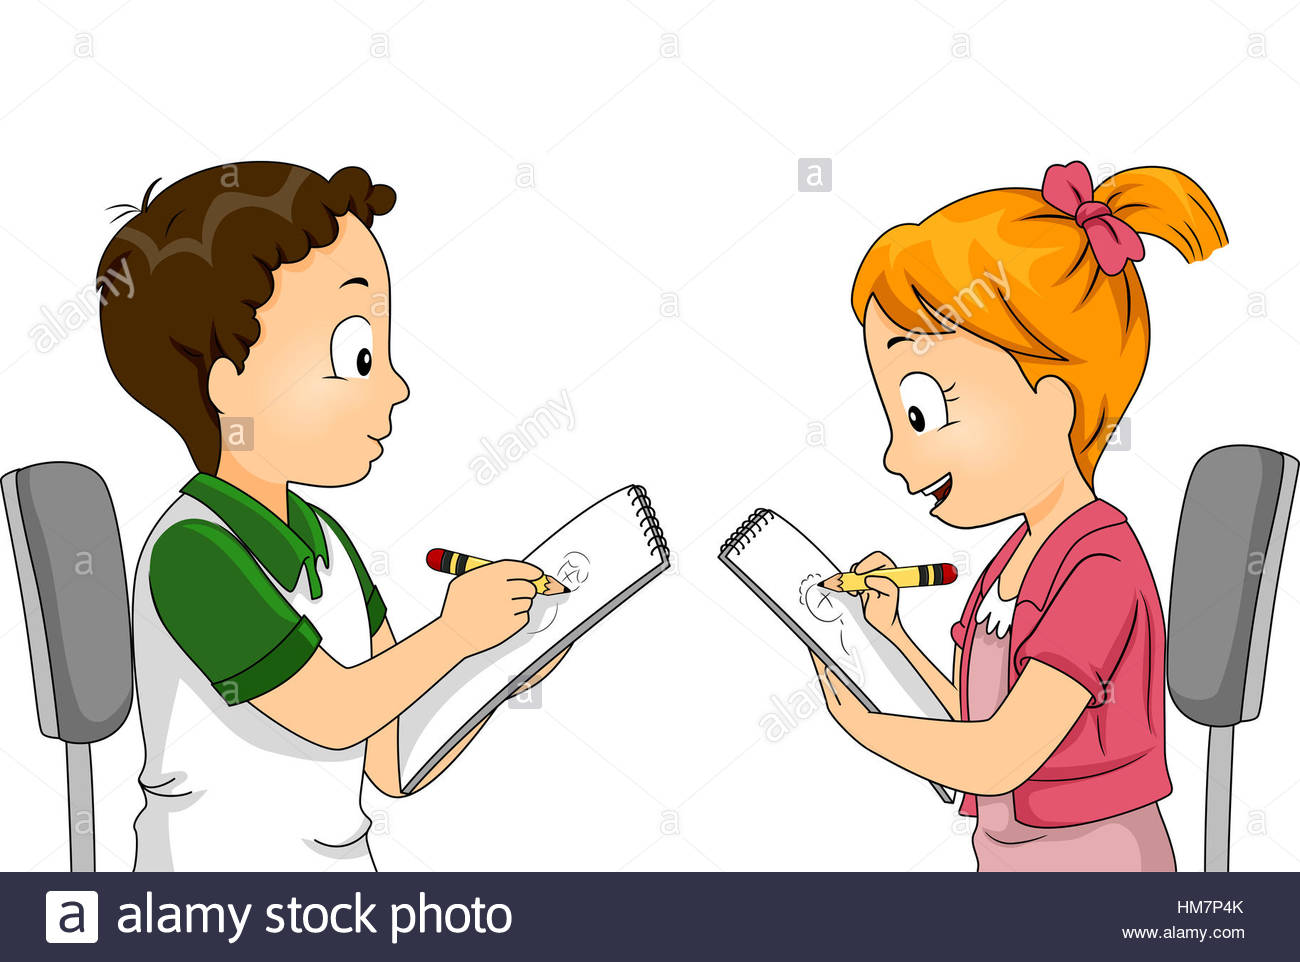 1300x962 Illustration Of Children Drawing Each Other Stock Photo 132936739